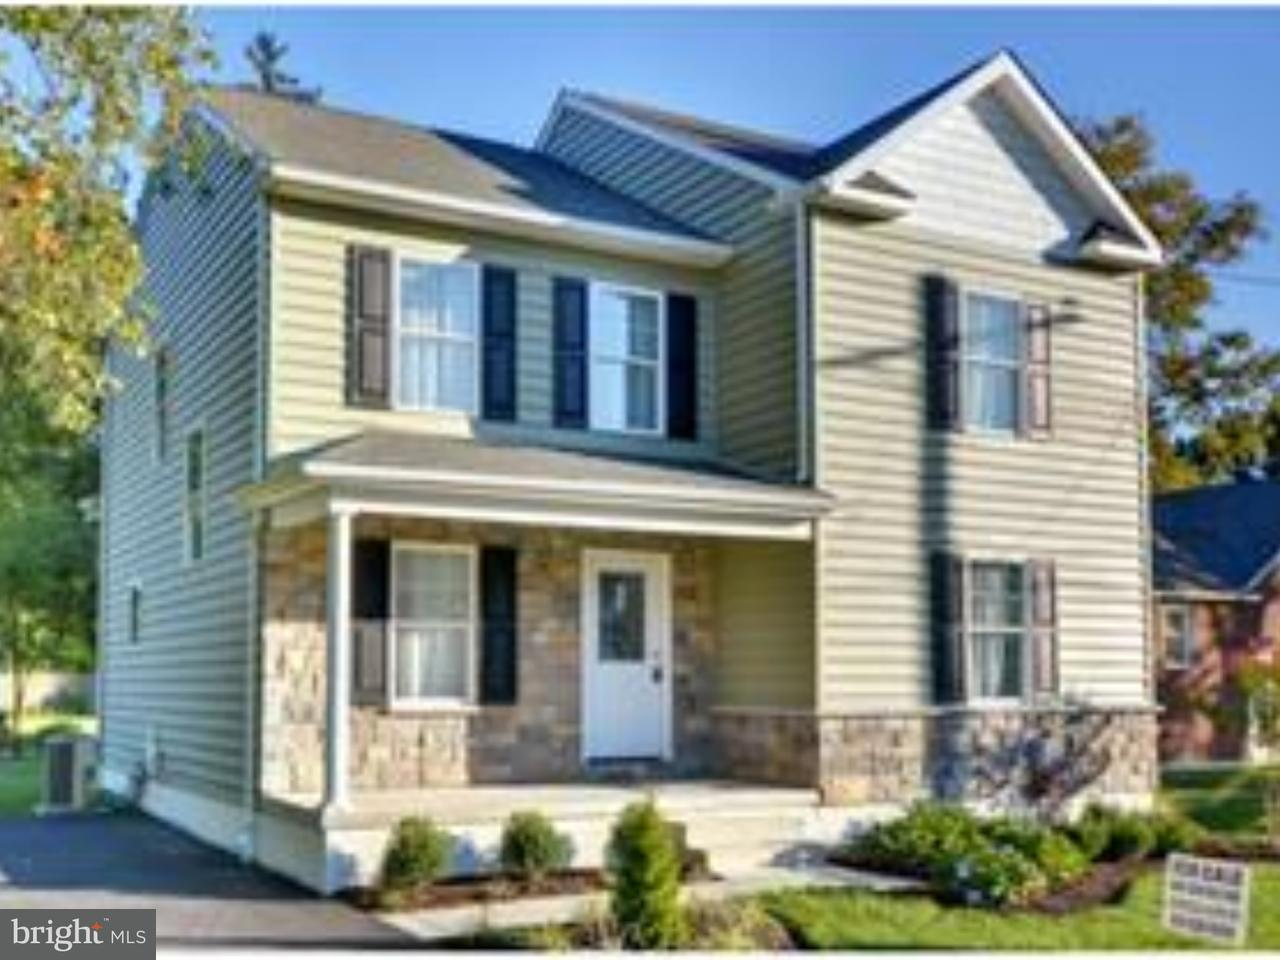 Single Family Home for Sale at 336 HOLMES Road Holmes, Pennsylvania 19043 United States